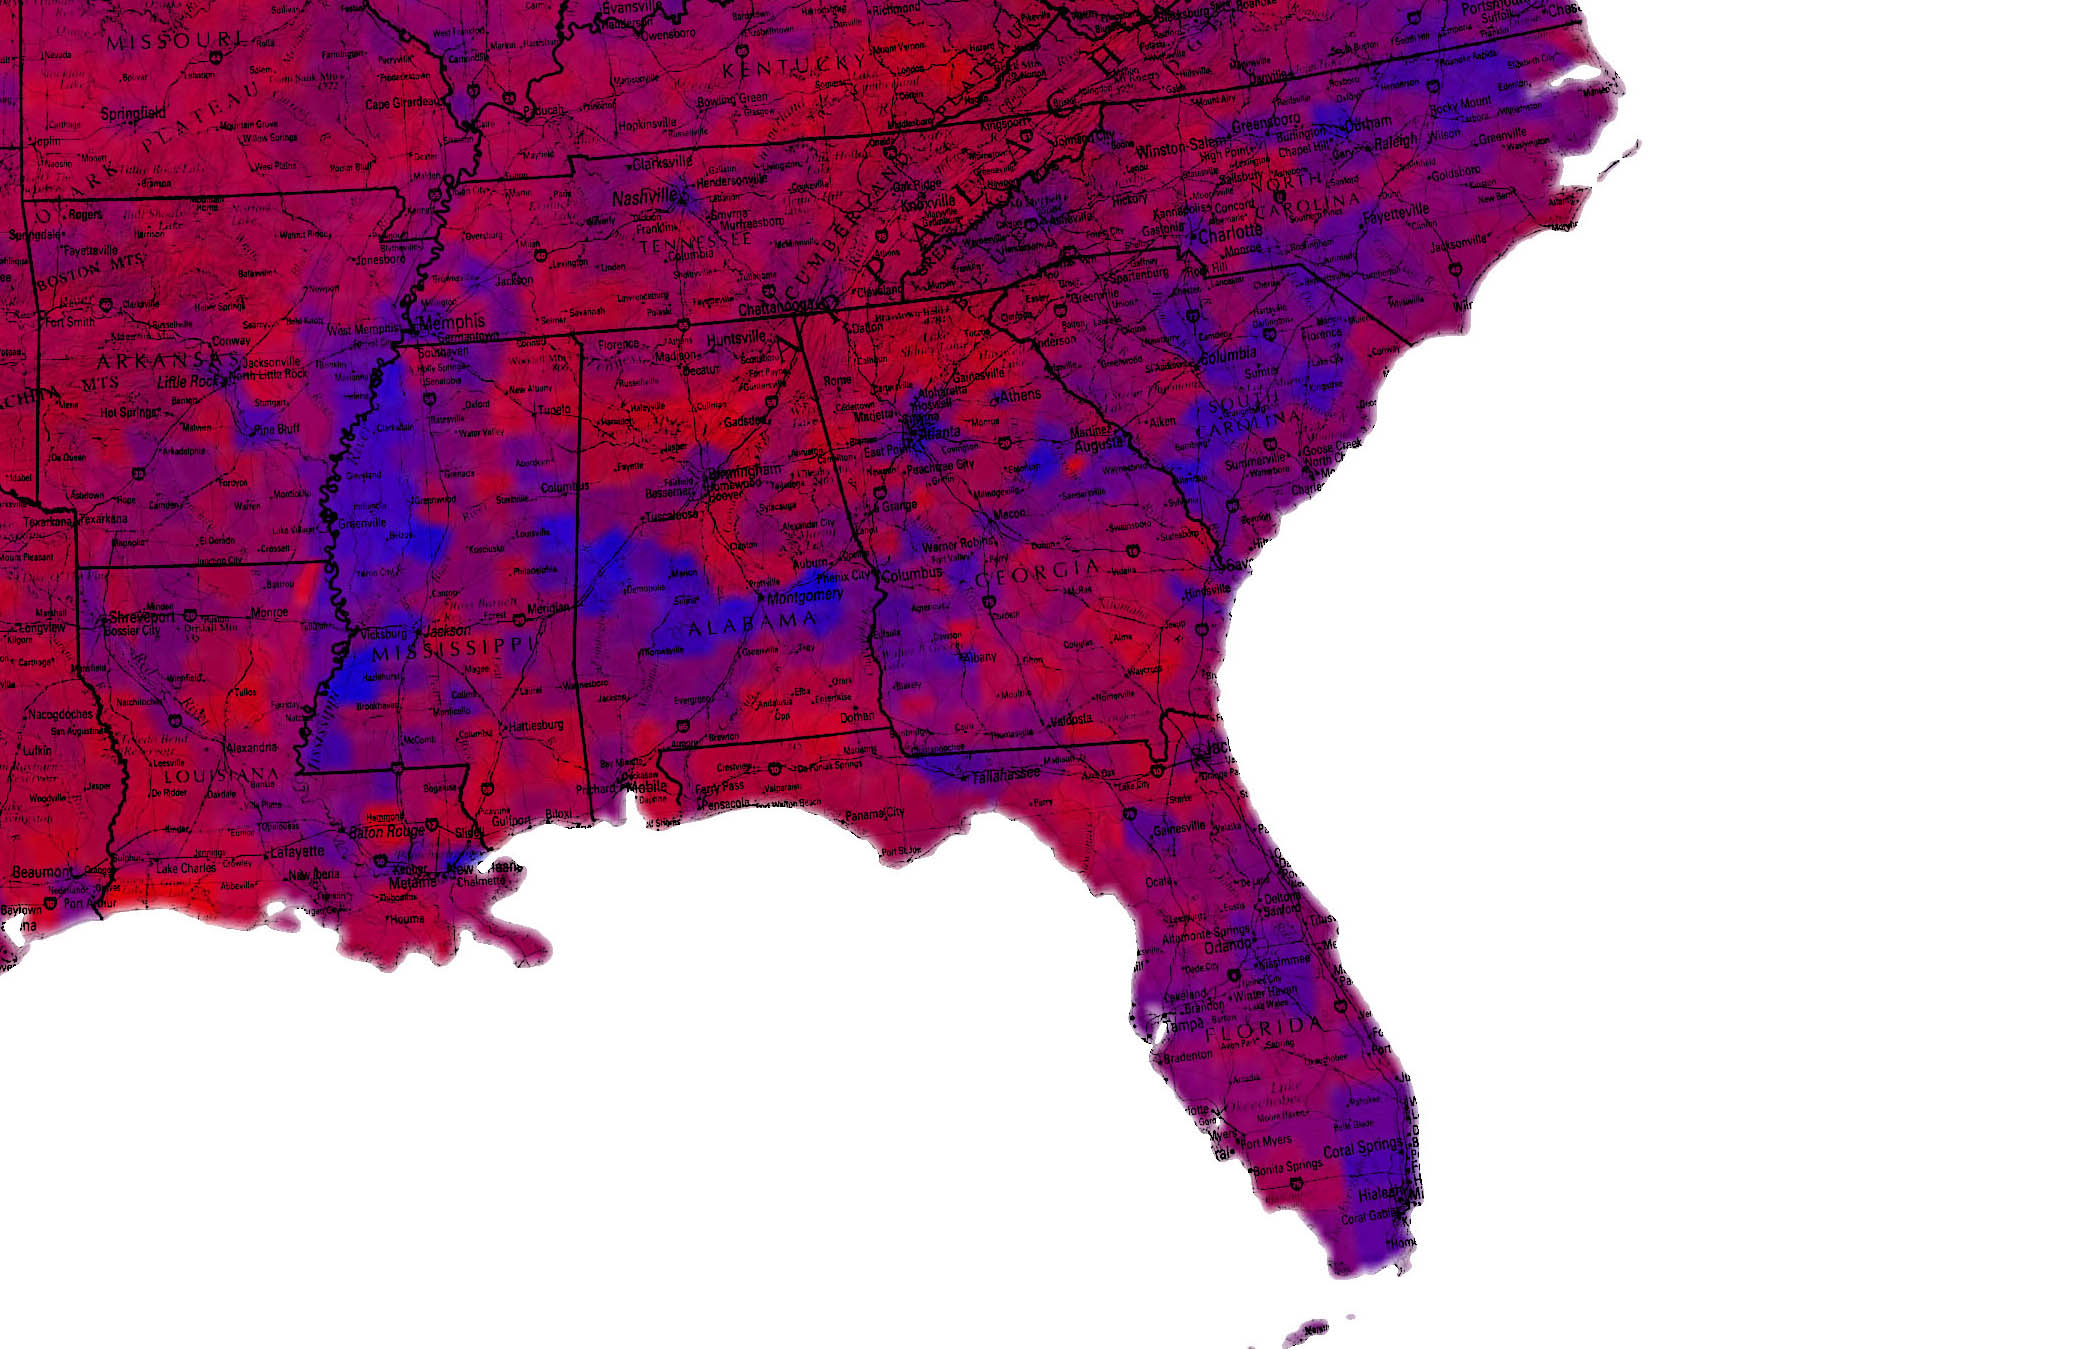 2016 US Presidential Election Map By County Vote Share Maps Of